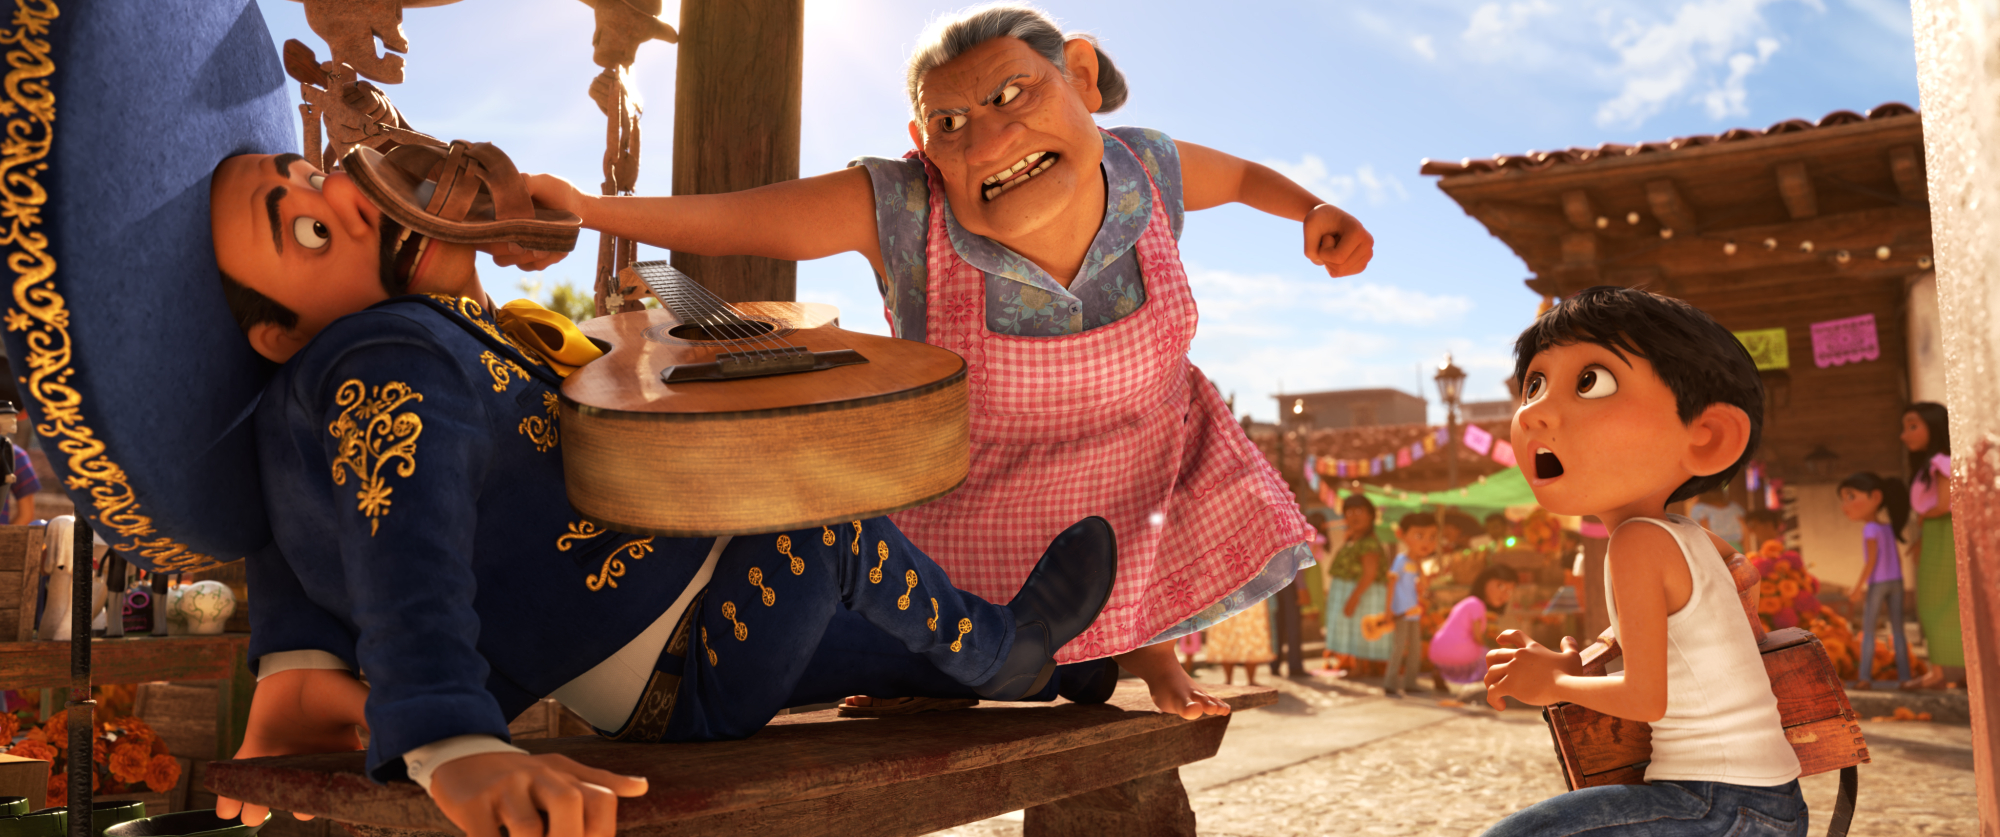 NO MUSIC  In DisneyPixarsCoco, which opens in U.S. theaters on Nov. 22, 2017, aspiring musician Miguel challenges his familys generations-old ban on music, spending time with a local mariachi. But his grandmother Abuelita promptly puts a stop to it. Coco features Lombardo Boyar as the voice of the mariachi, Rene Victor as the voice of Abuelita and Anthony Gonzelez as the voice of Miguel. 2017 DisneyPixar. All Rights Reserved.